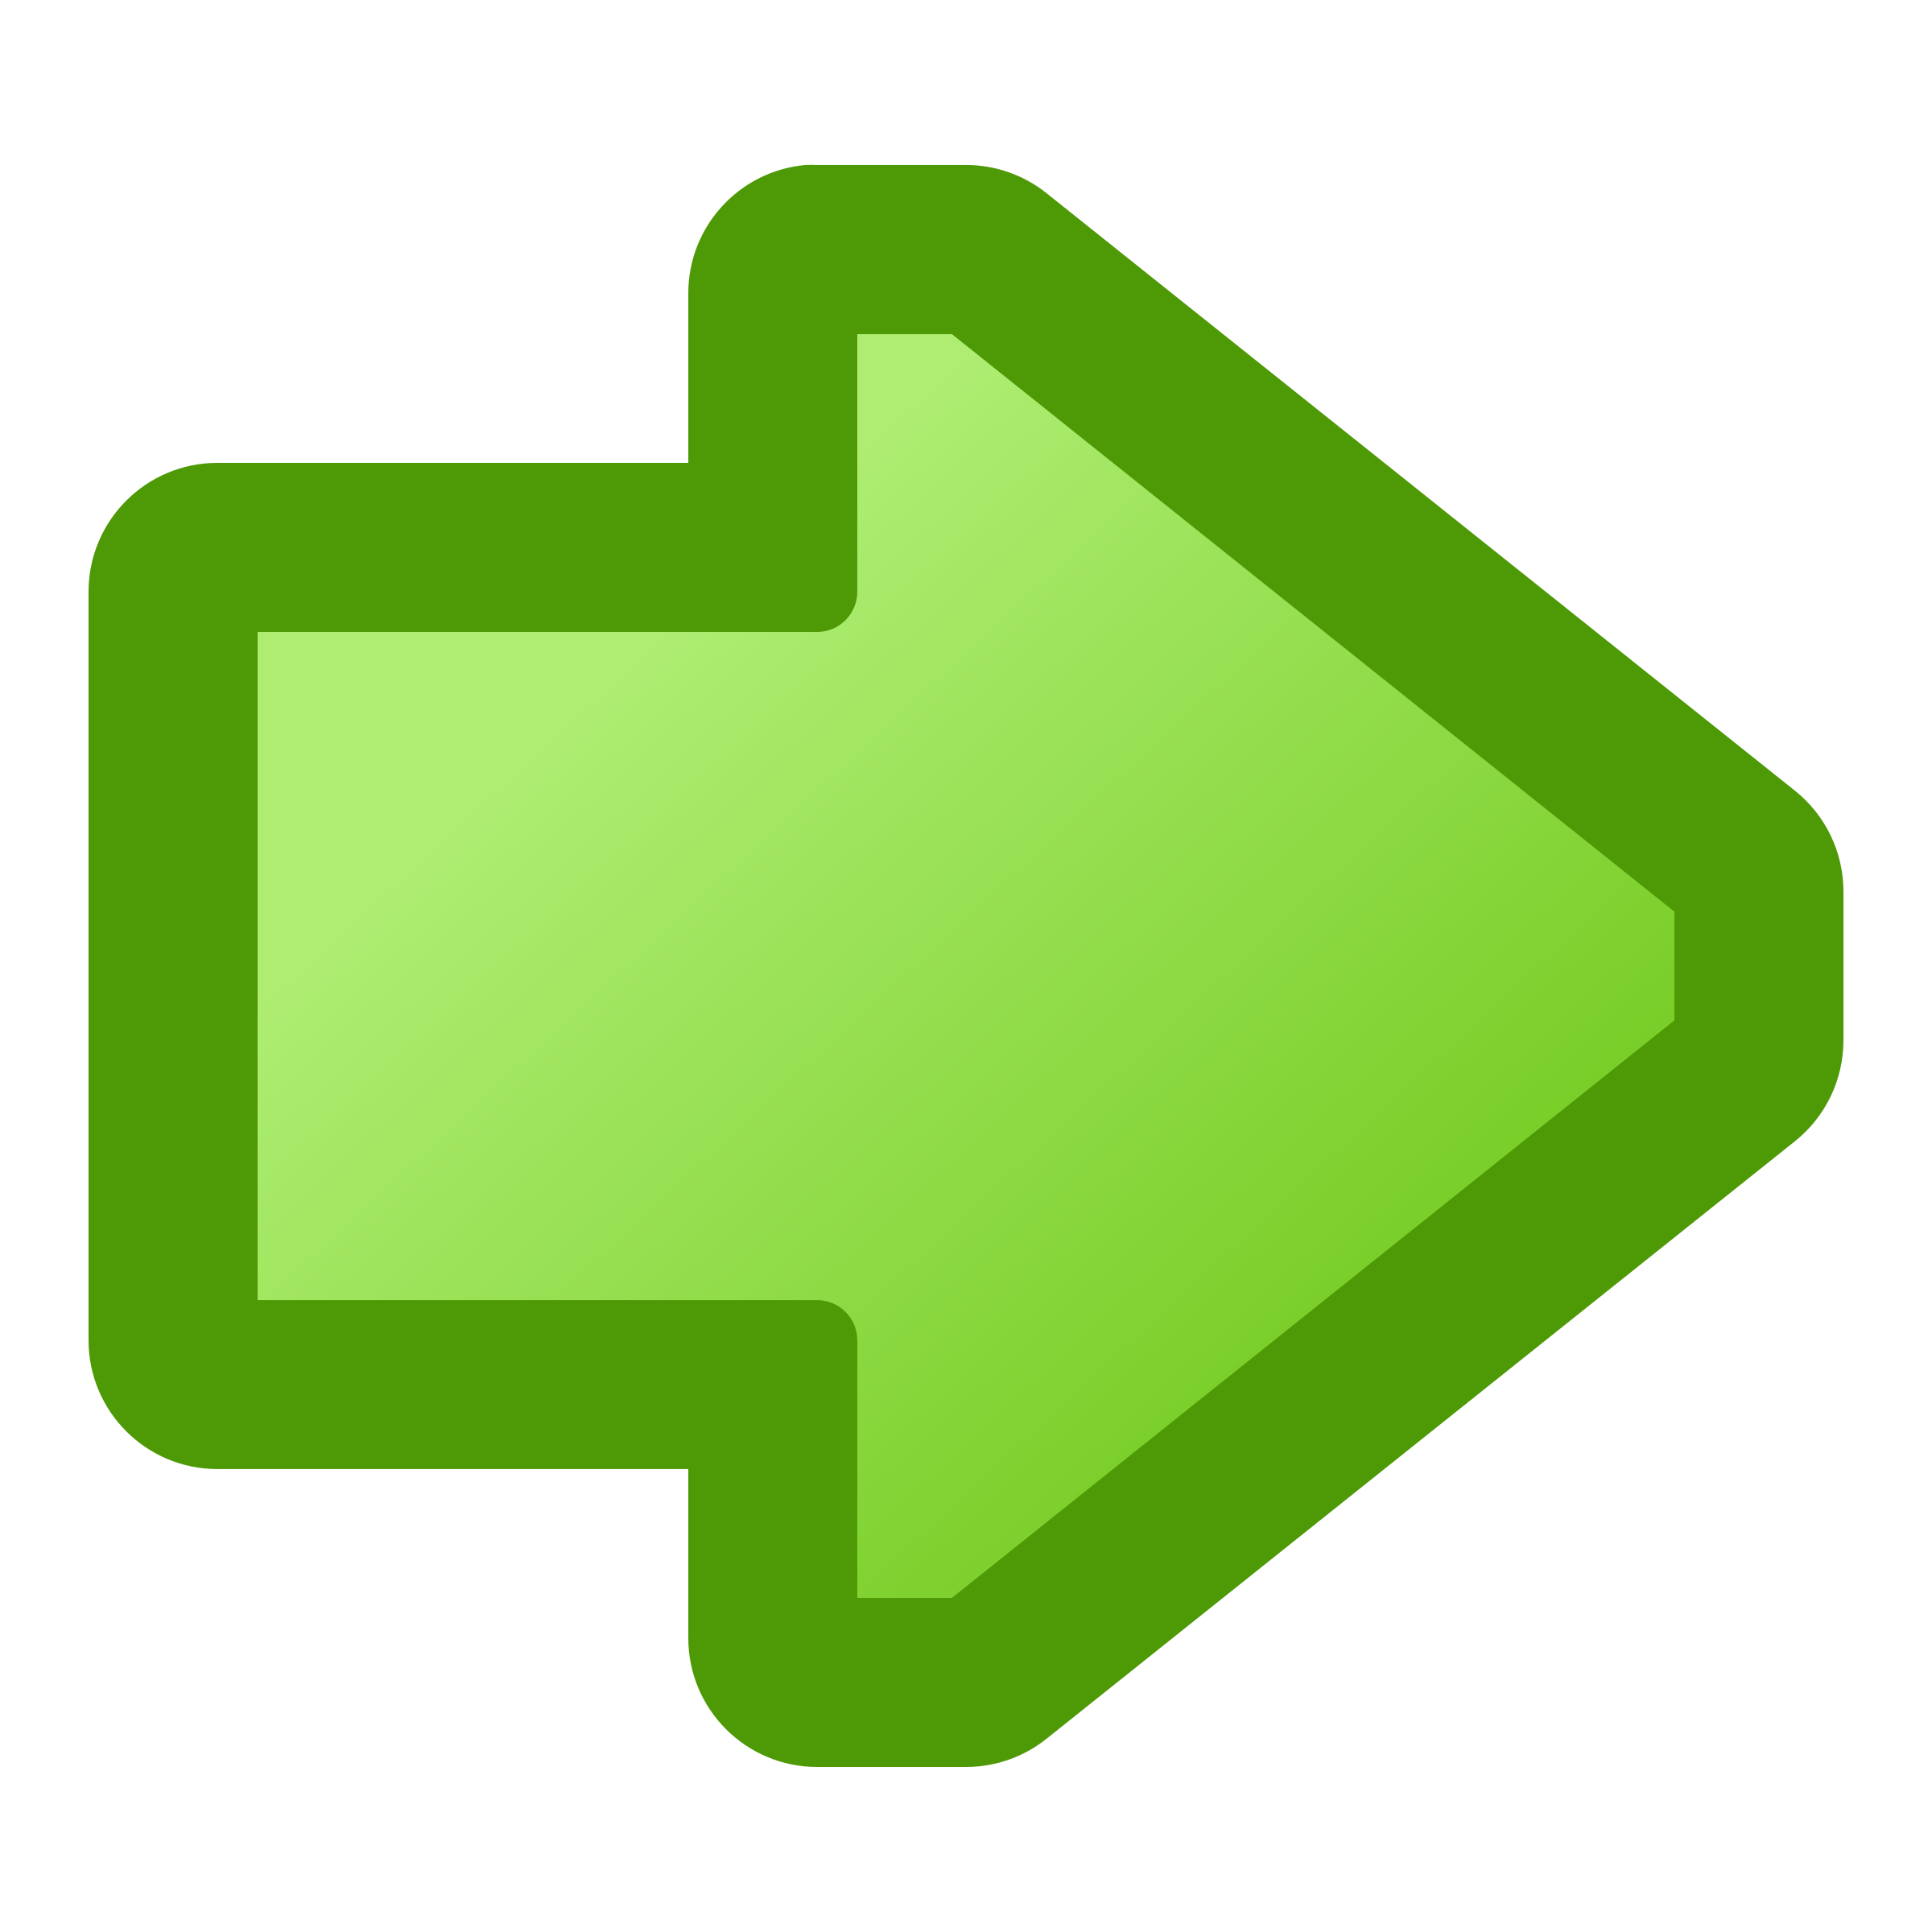 icon_arrow_right_green by jean_victor_balin